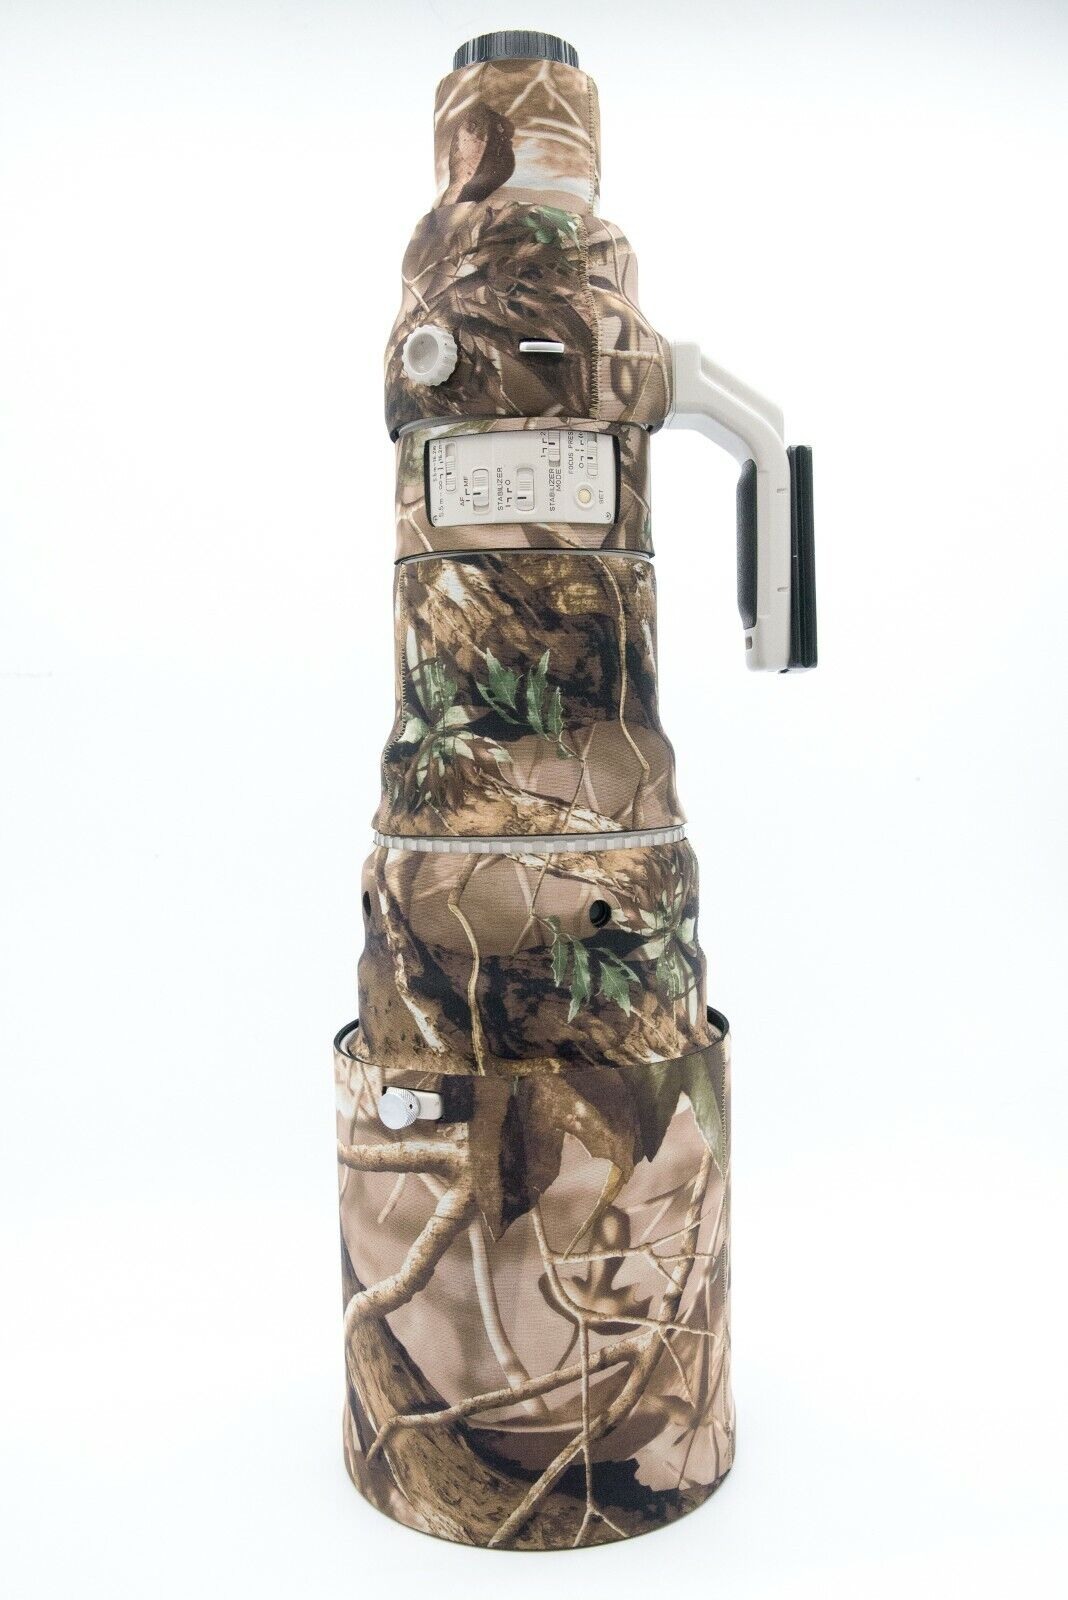 LensCamo Neoprene Camouflage Cover for Canon 600 mm f/4L IS USM - mark i